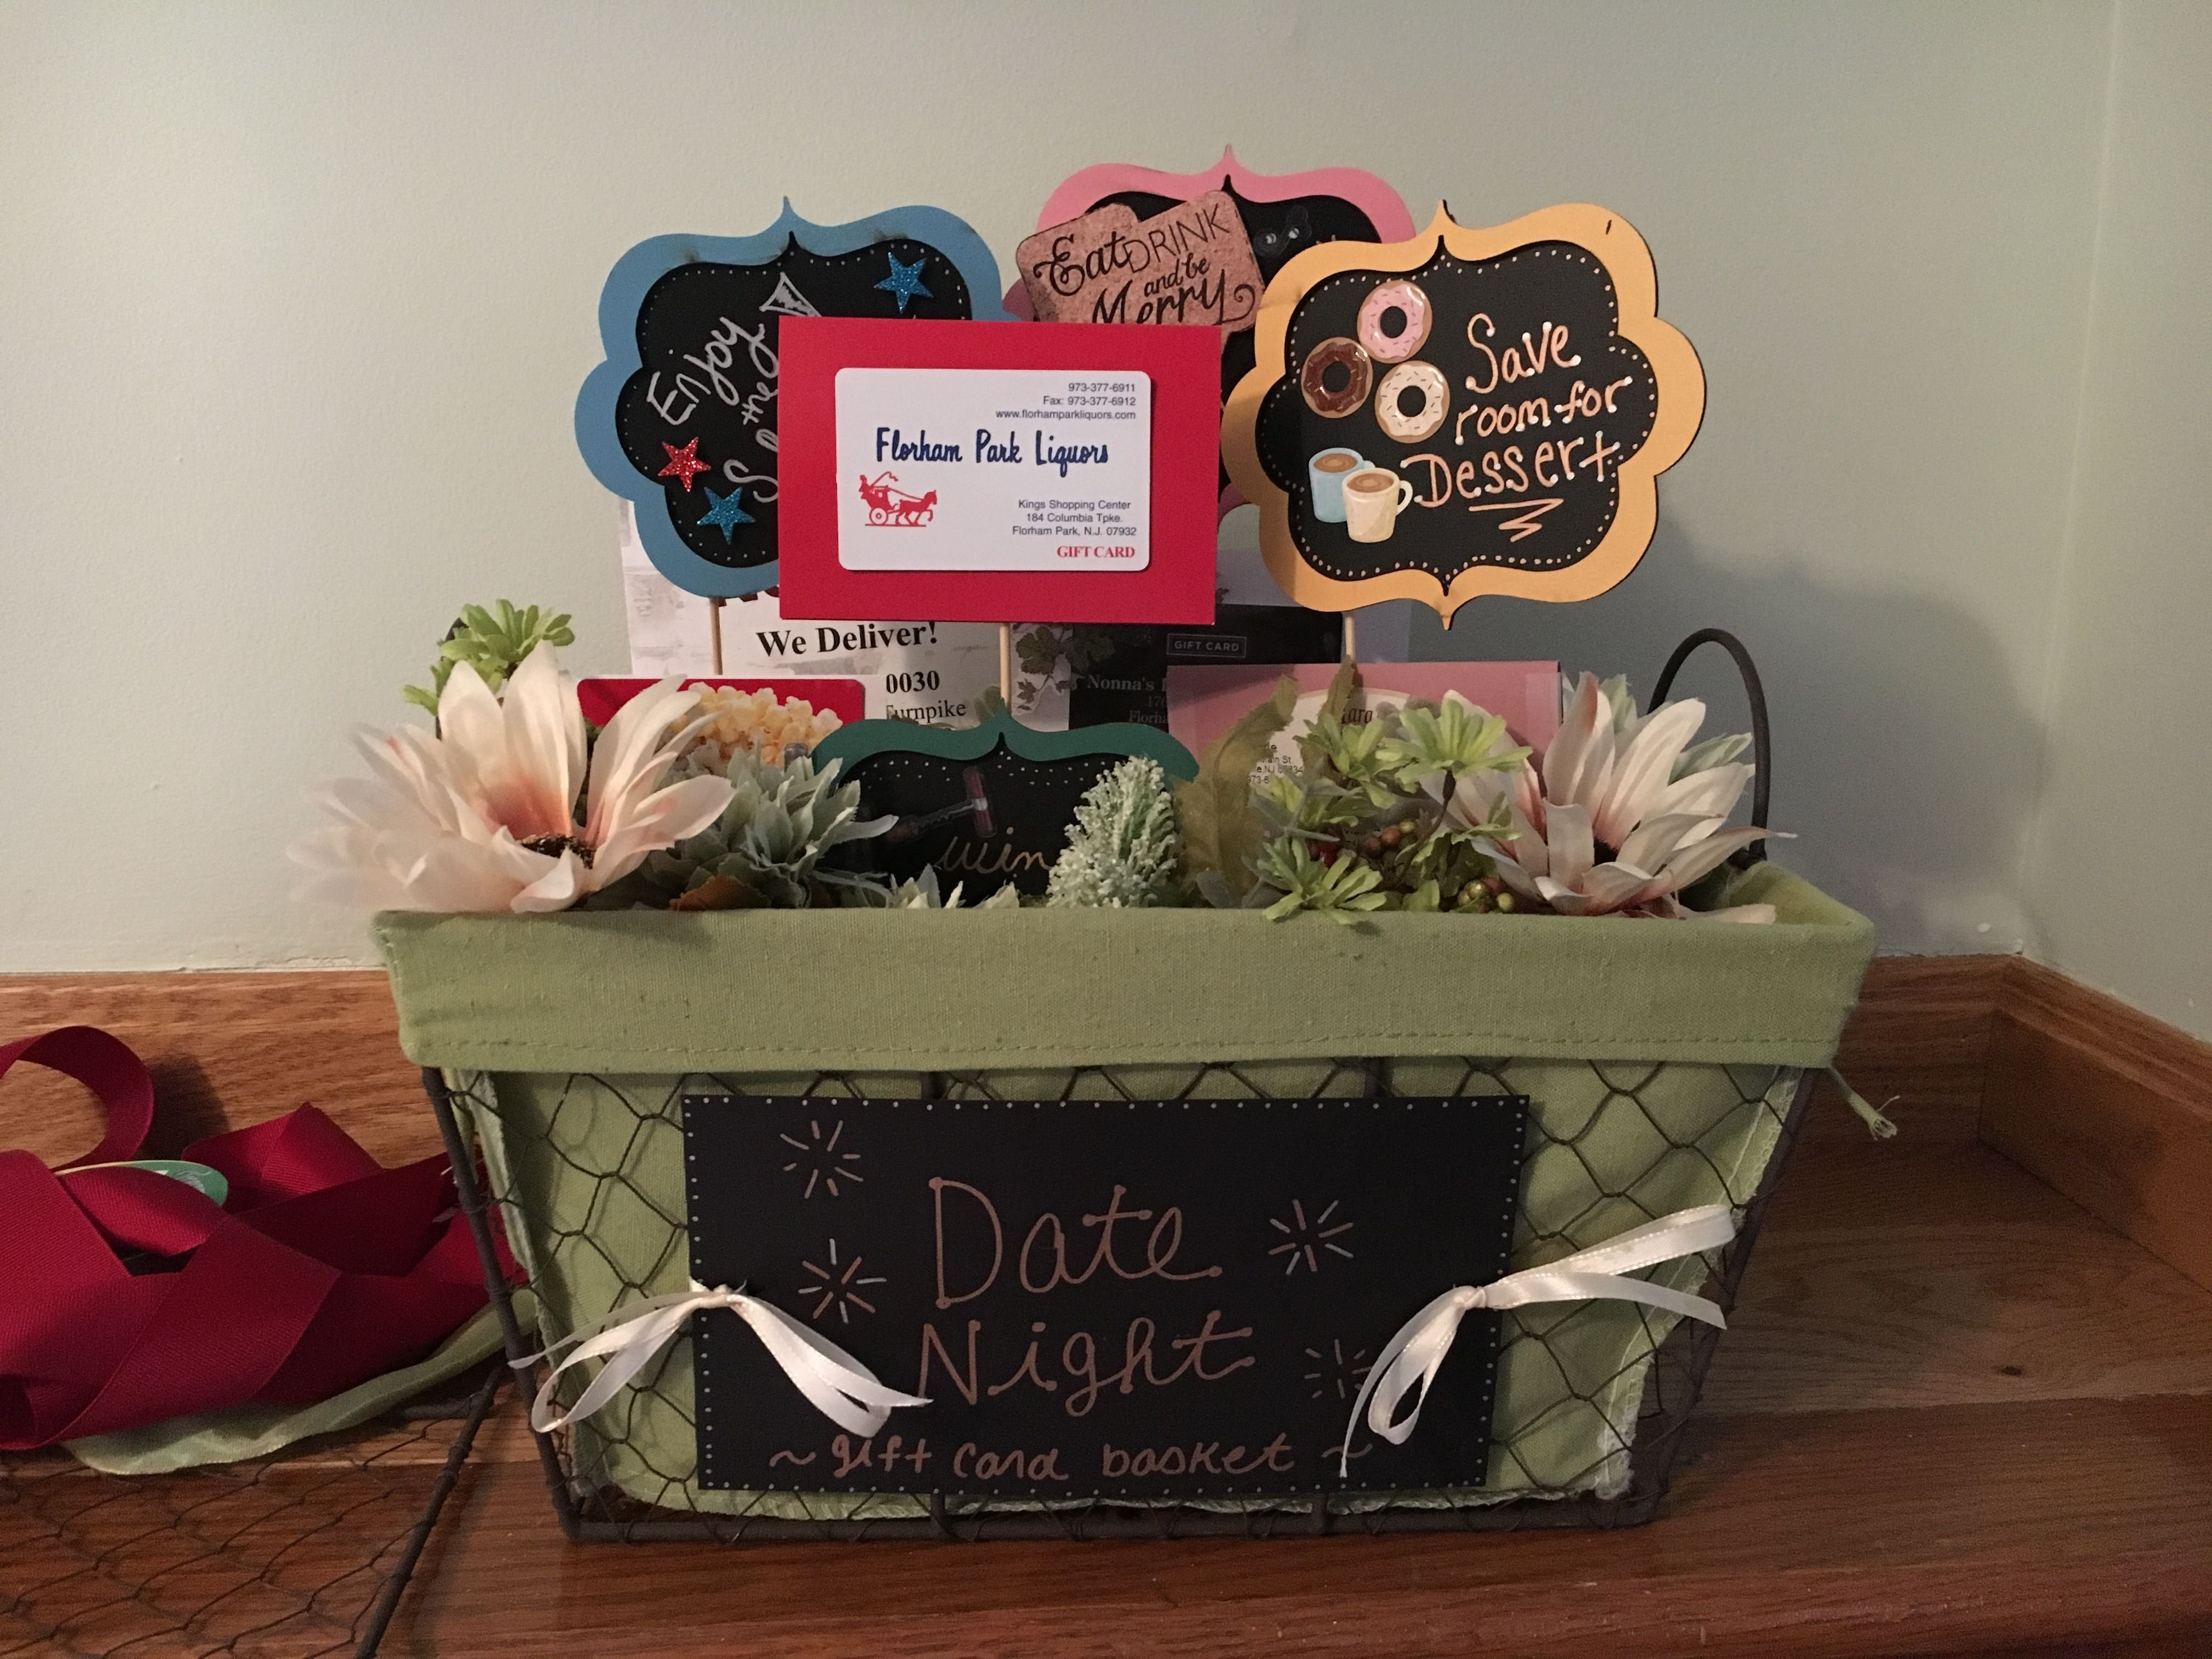 Themes For Gift Baskets: 10 Best Date Night Gift Basket Ideas 2019